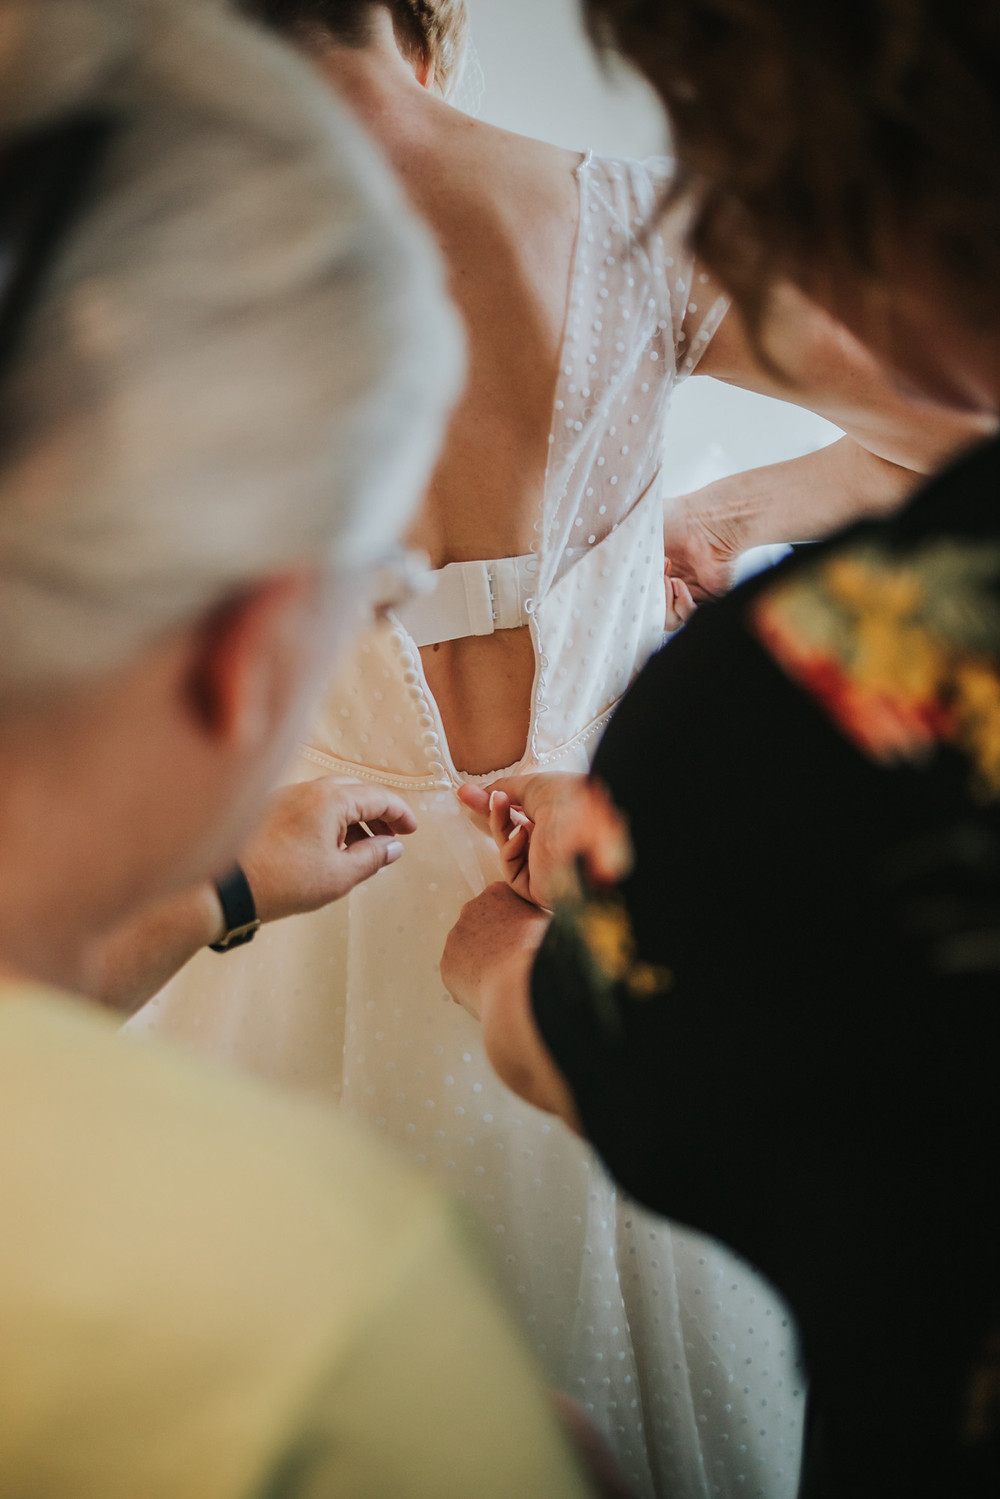 Bride putting on her wedding dress with help from her friends